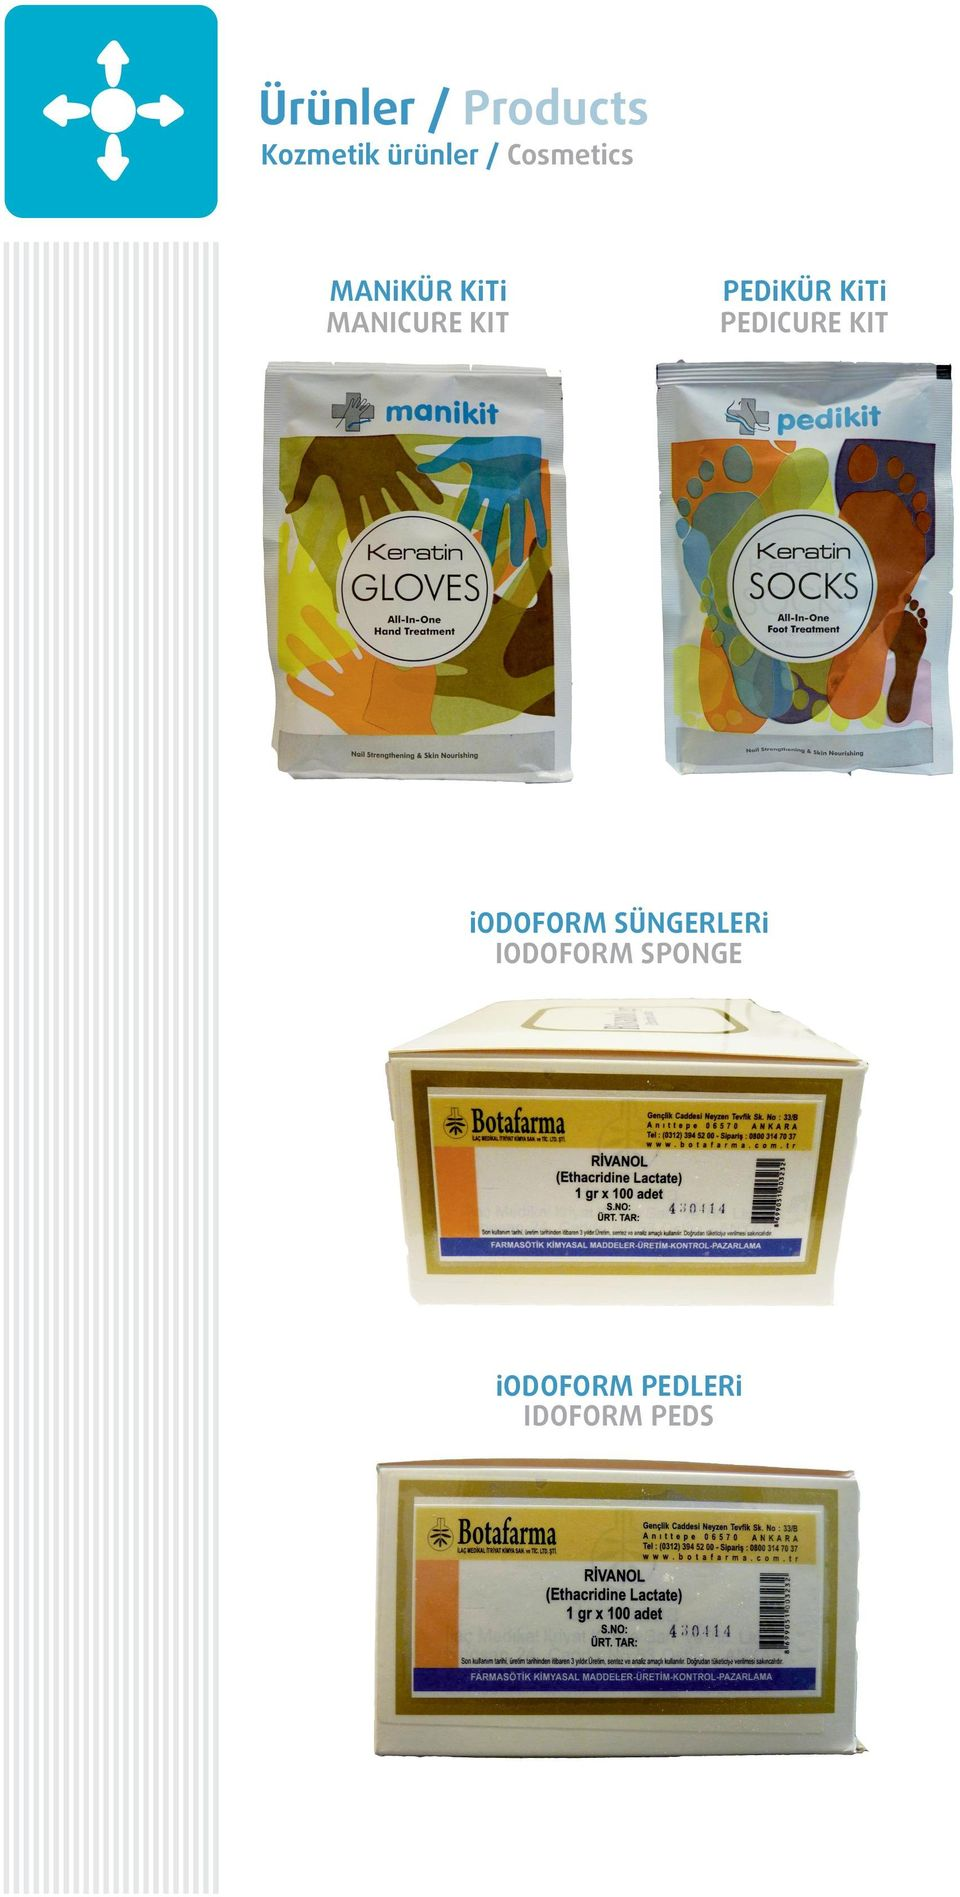 KÜR K T PEDICURE KIT iodoform SÜNGERLER